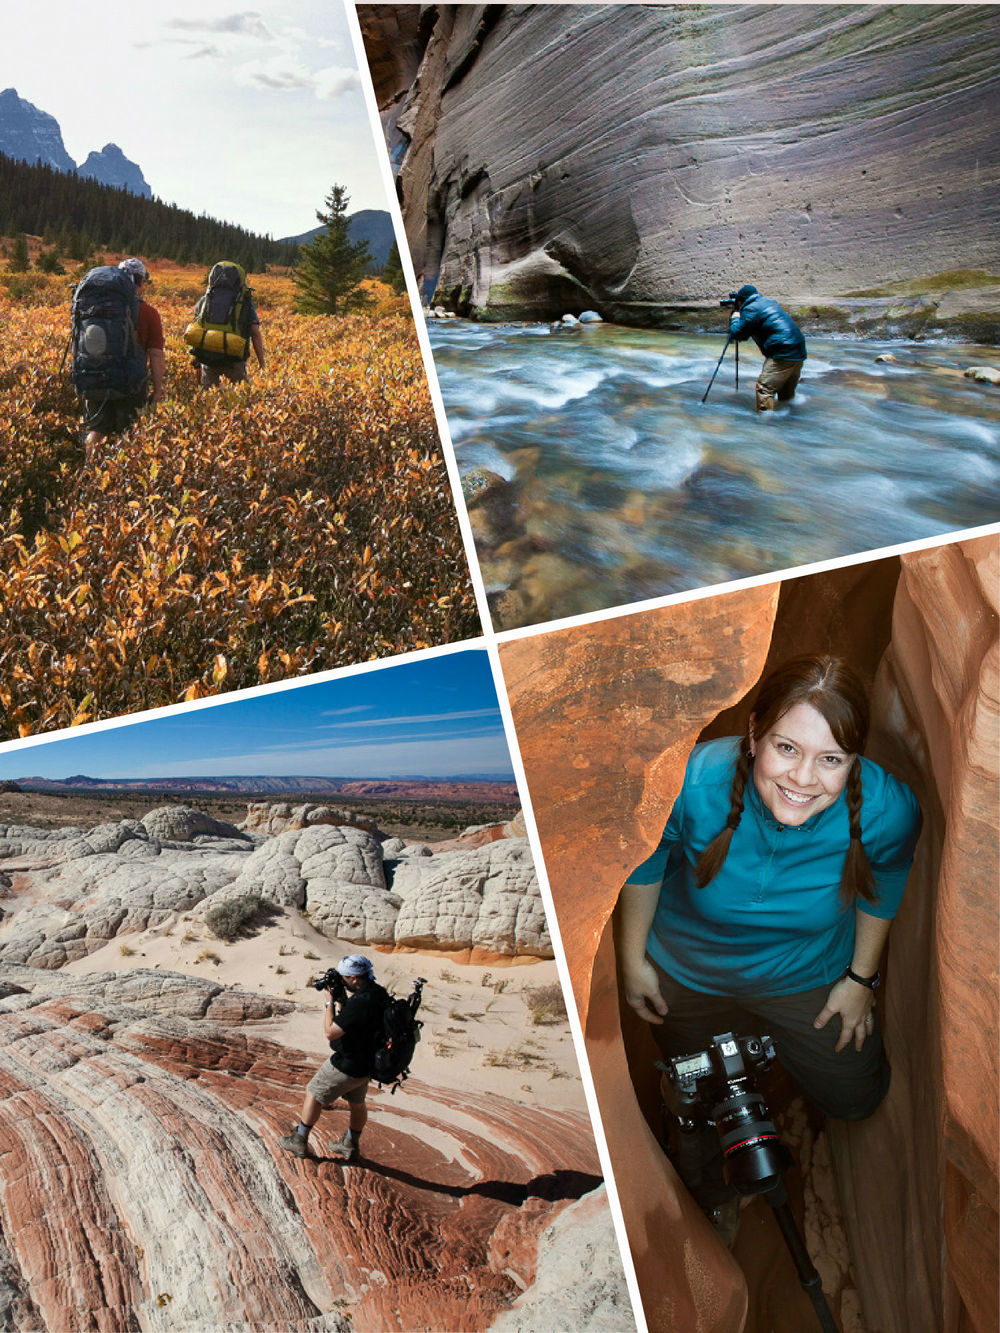 Backpacking to the Tonquin Valley in Jasper National Park, Ron photographing in the Zion Narrows, exploring the Vermillion Cliffs National Monument, and photographing a slot canyon in Utah